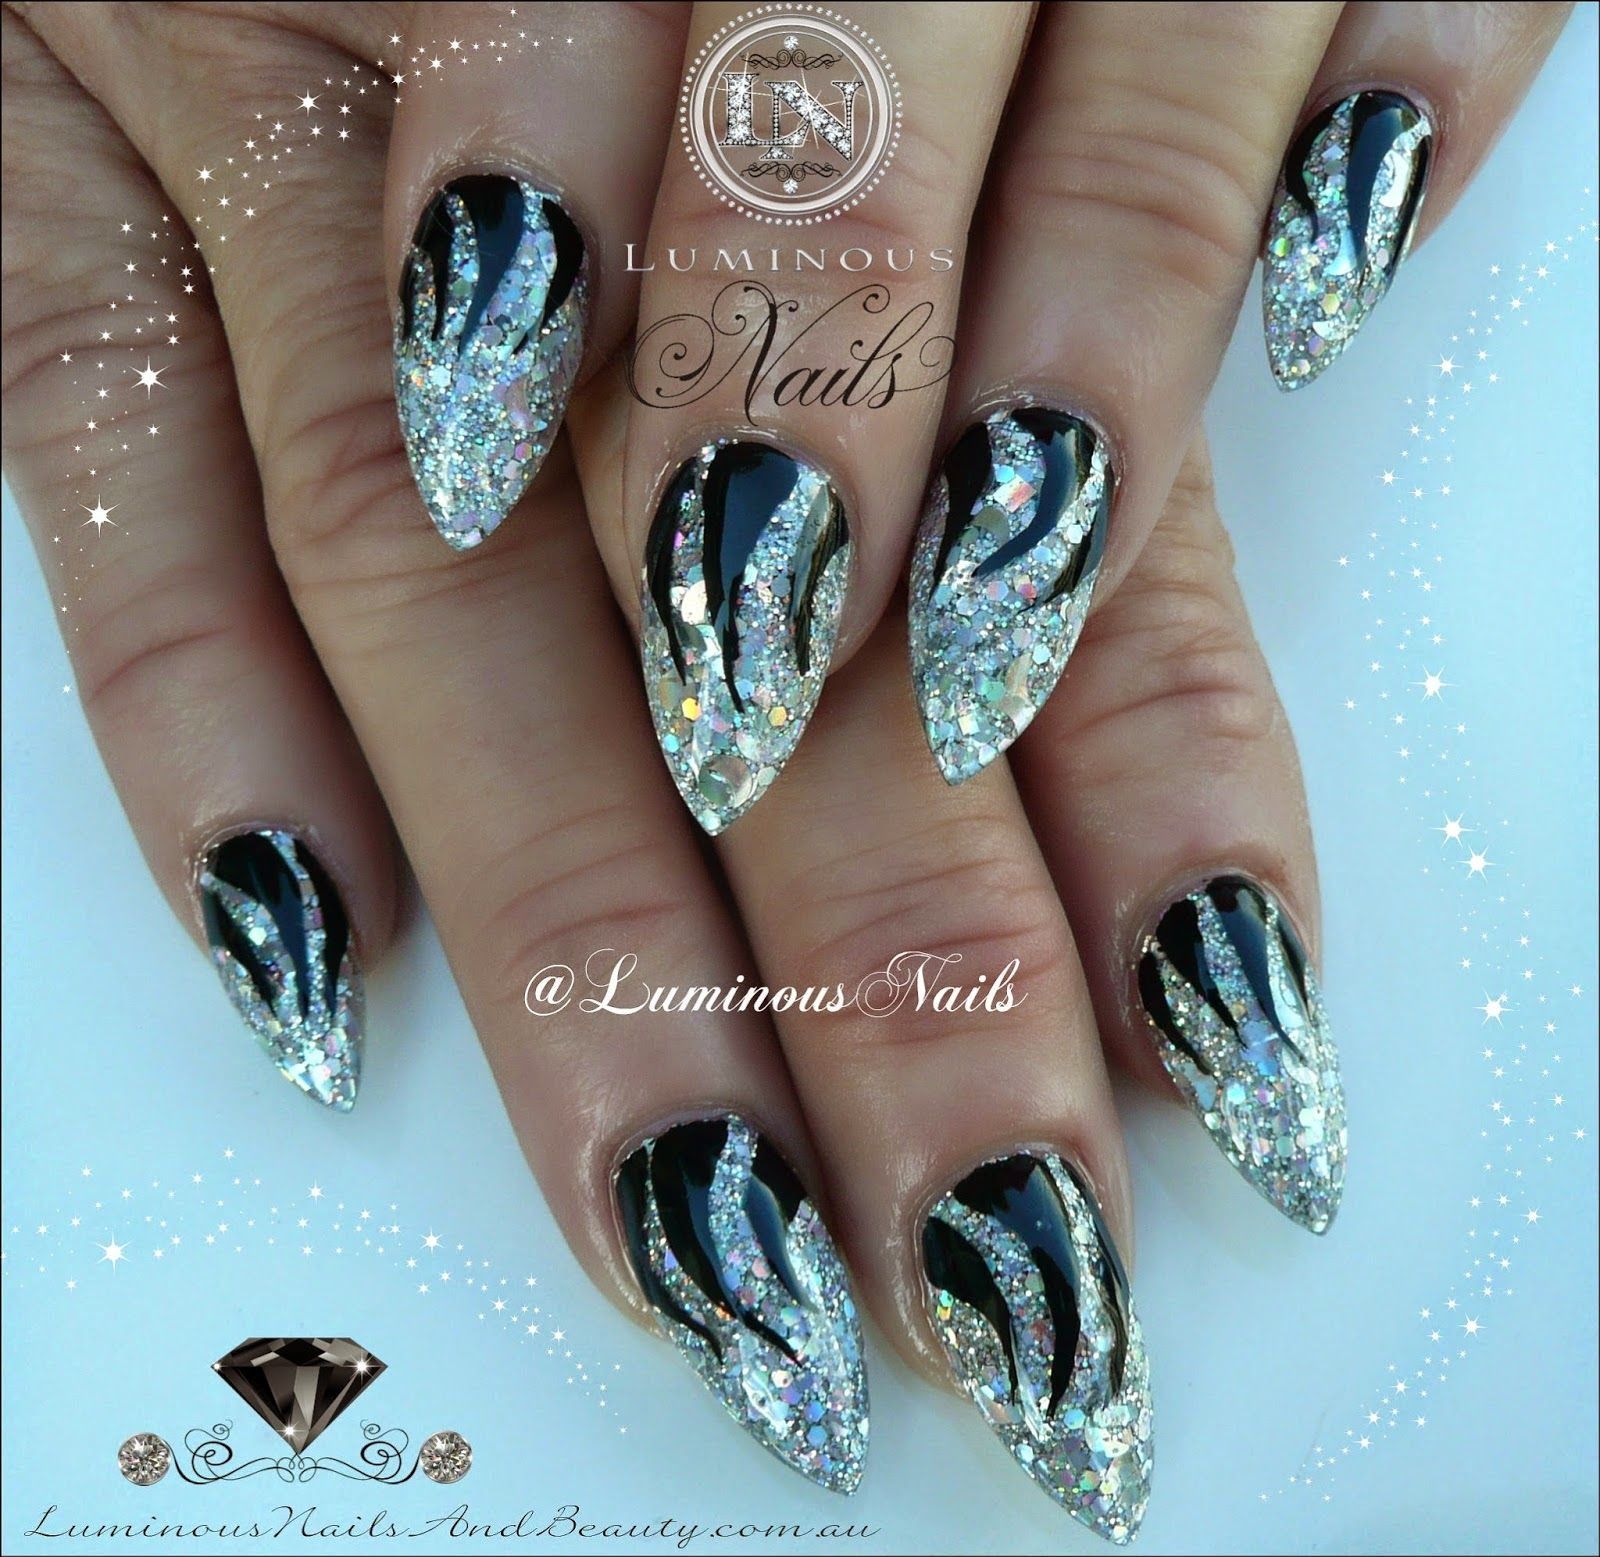 holographic silver & black nails sculptured acrylic with